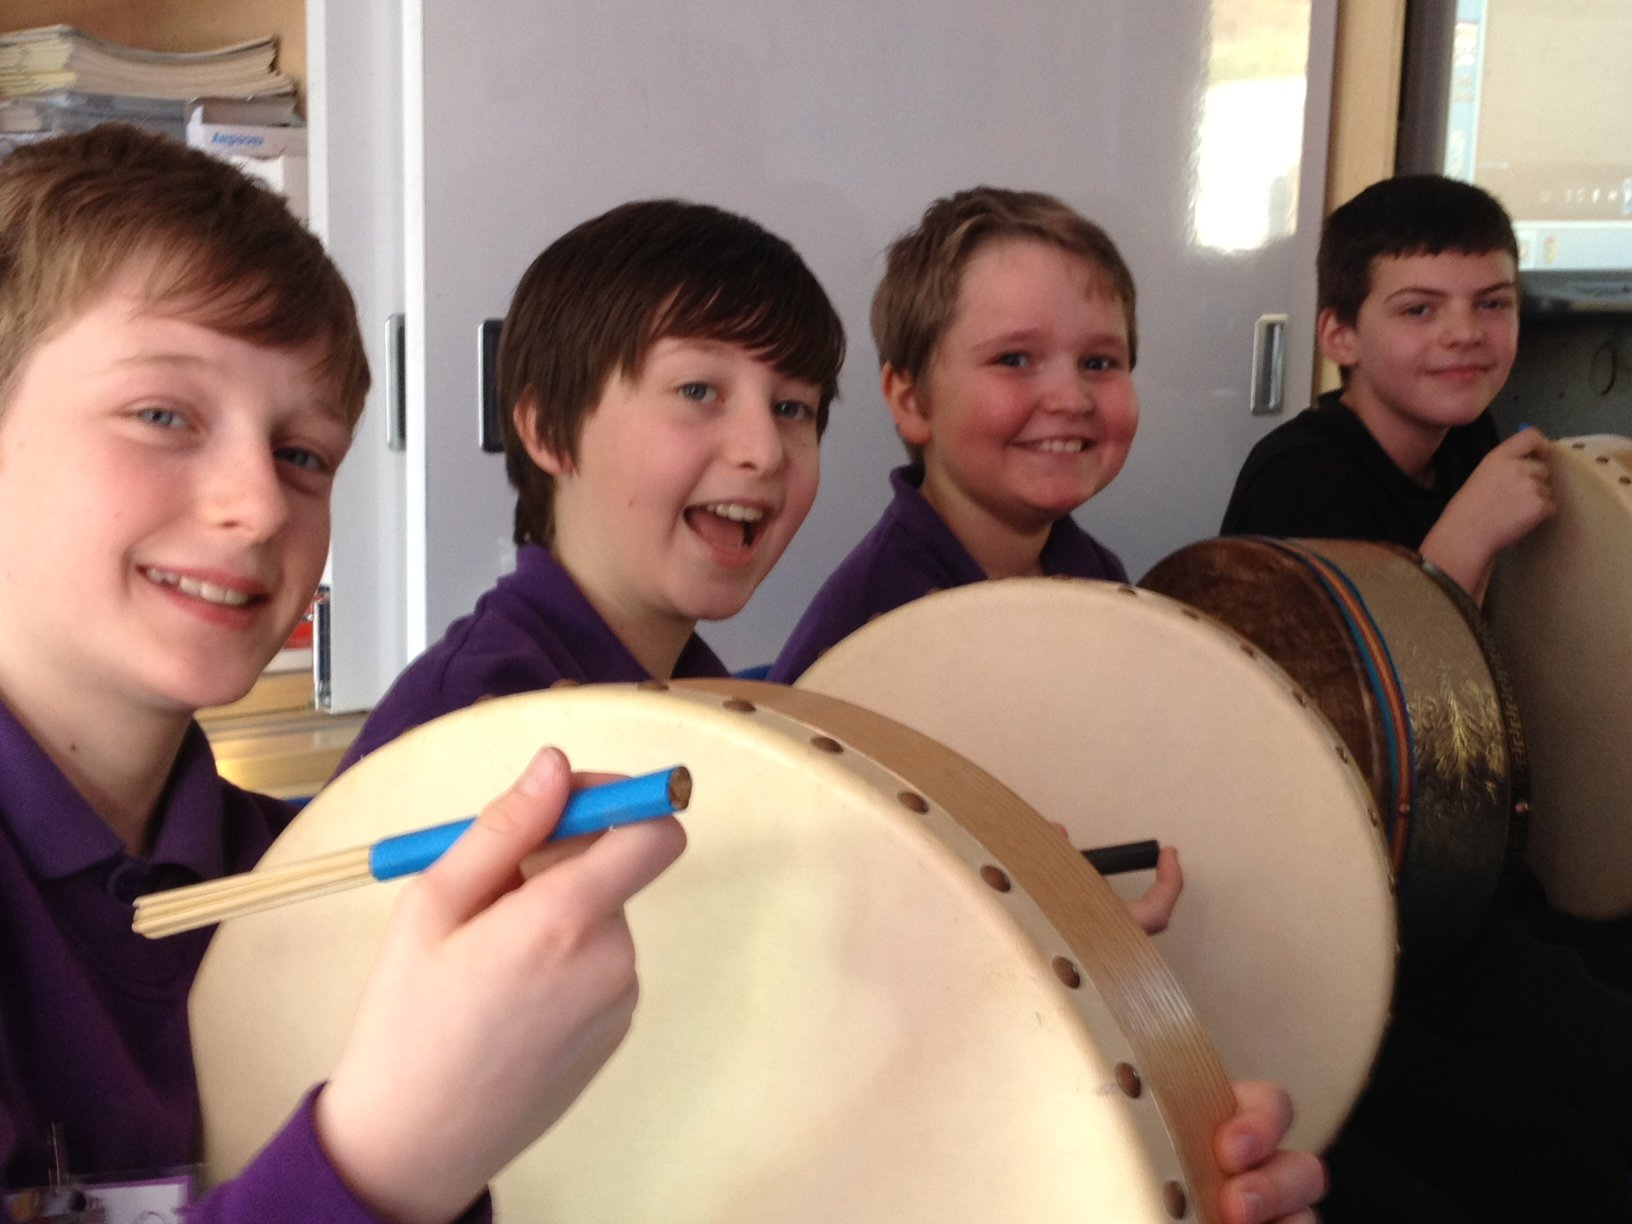 Bodhran players pose for the camera.